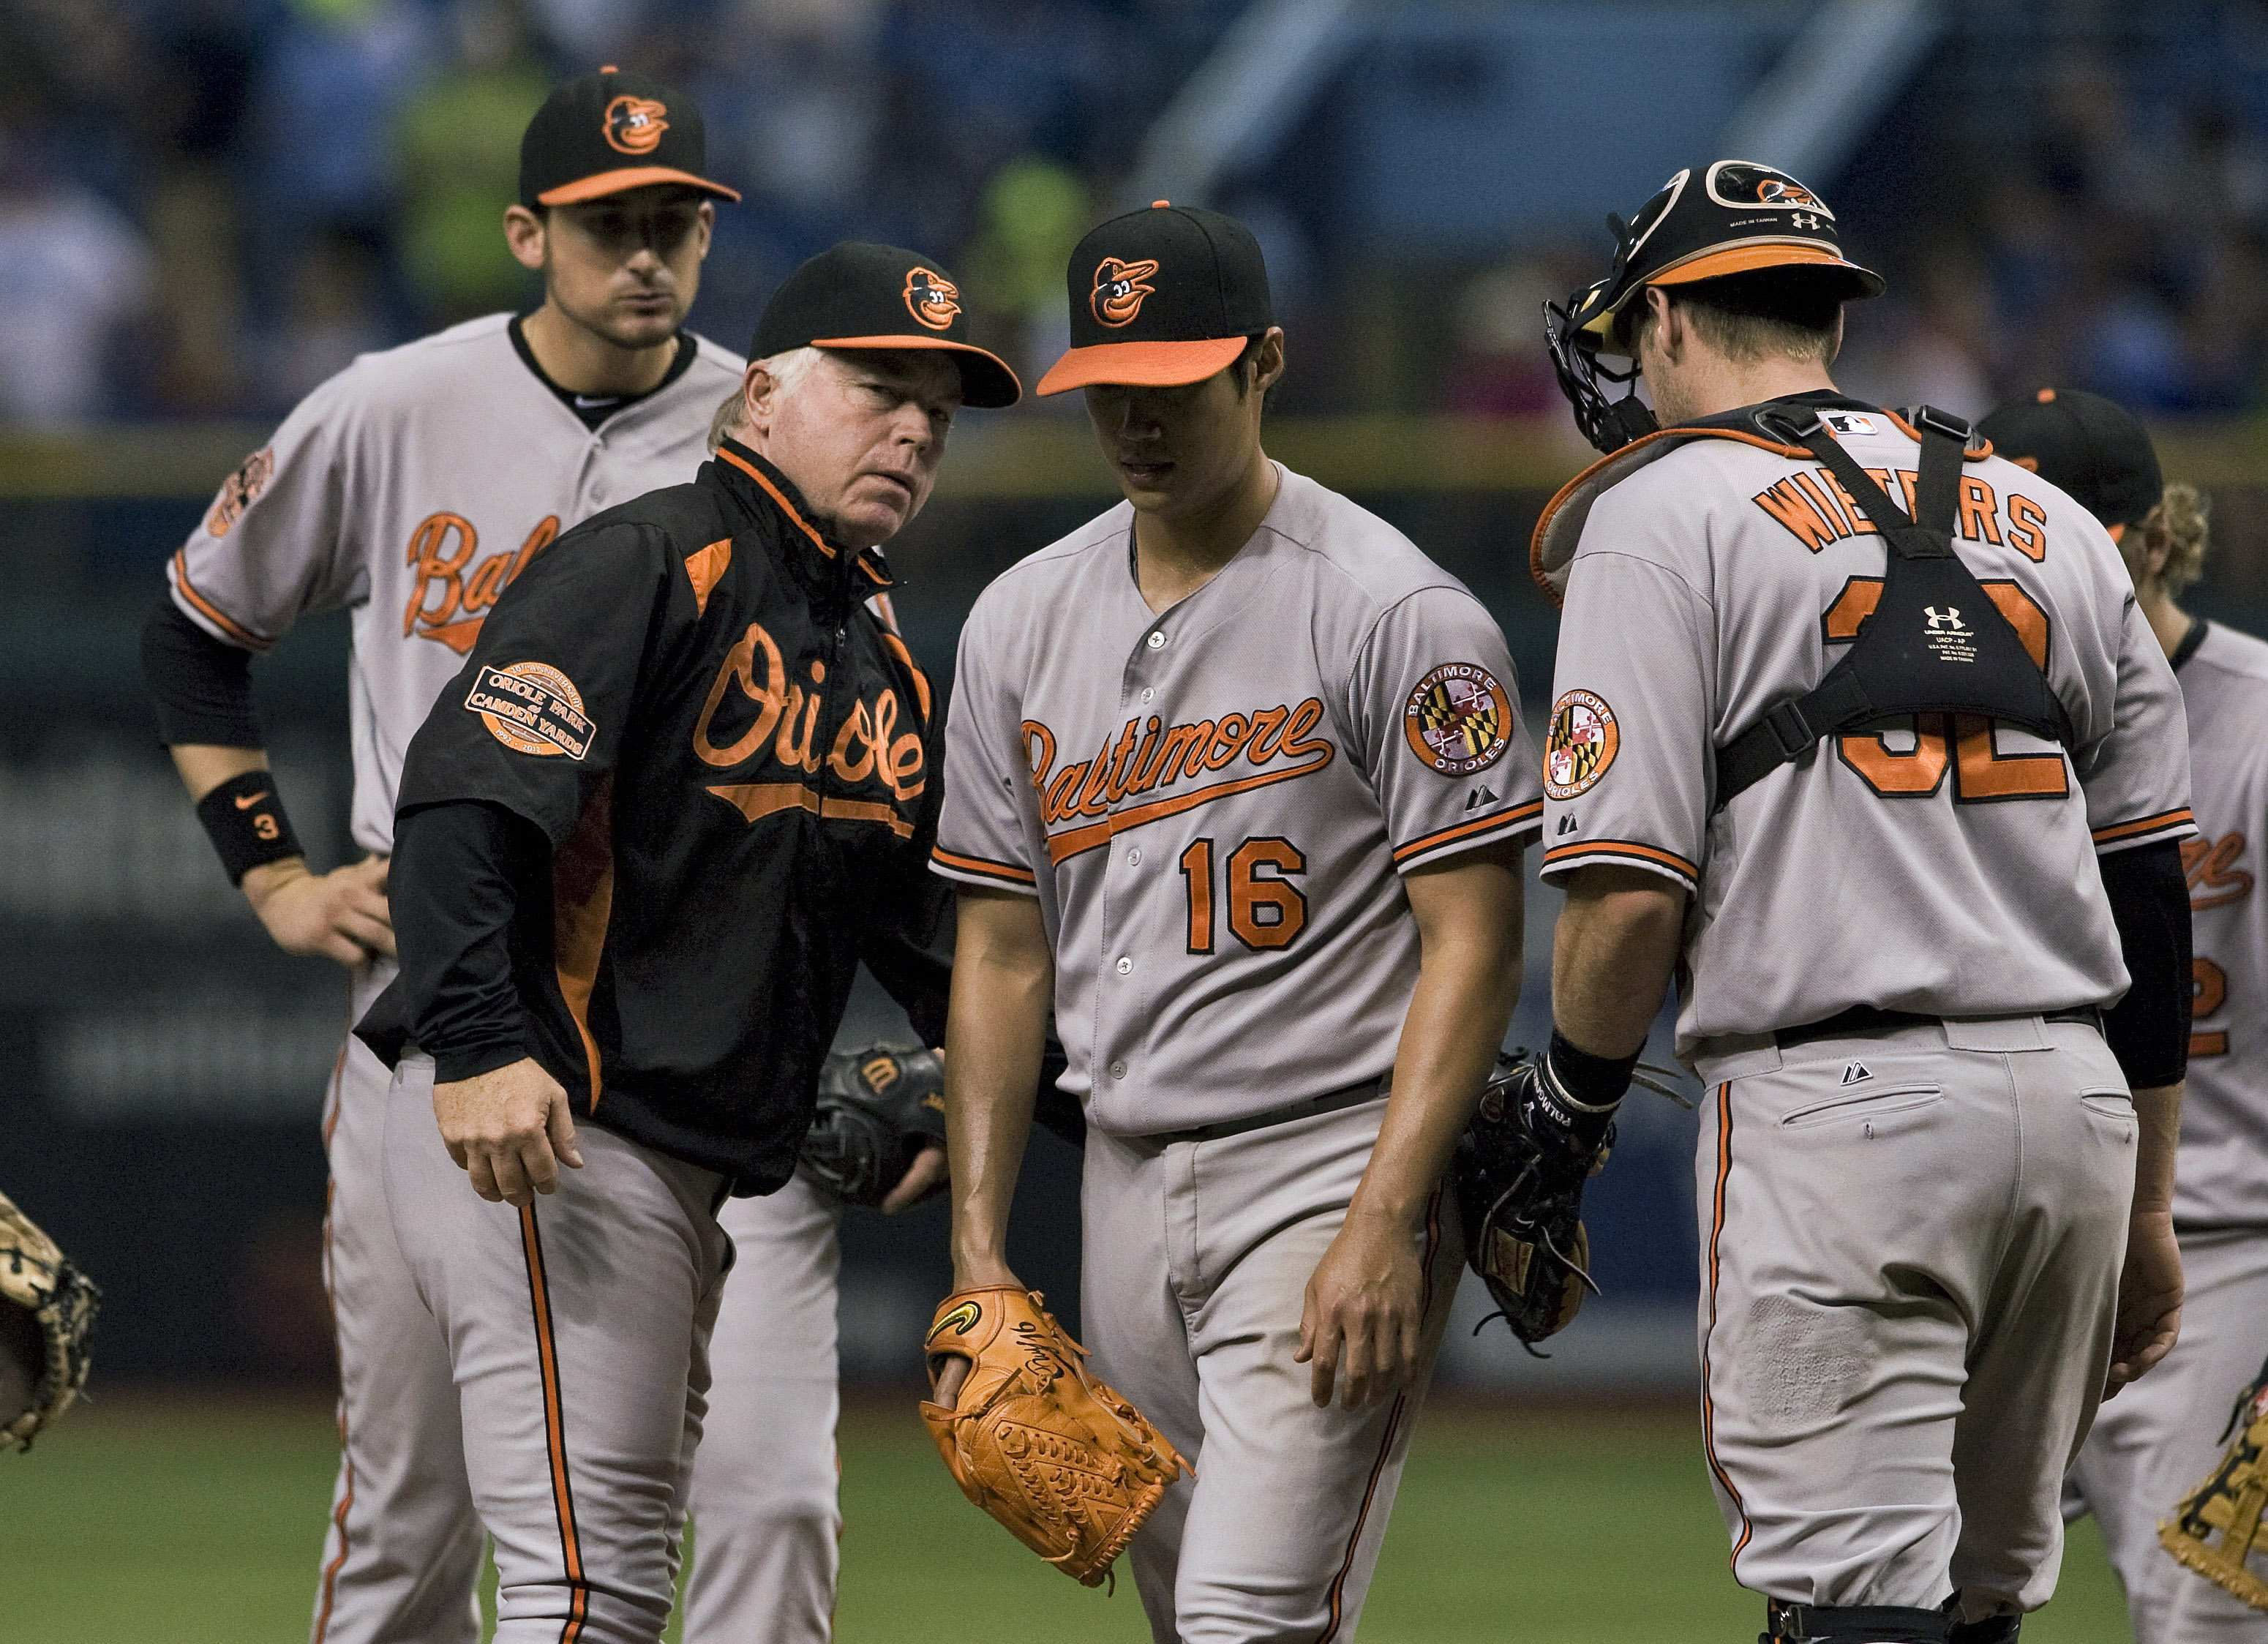 Buck Showalter's Orioles must beat Texas in a one-game playoff to advance in the postseason. (Reuters)